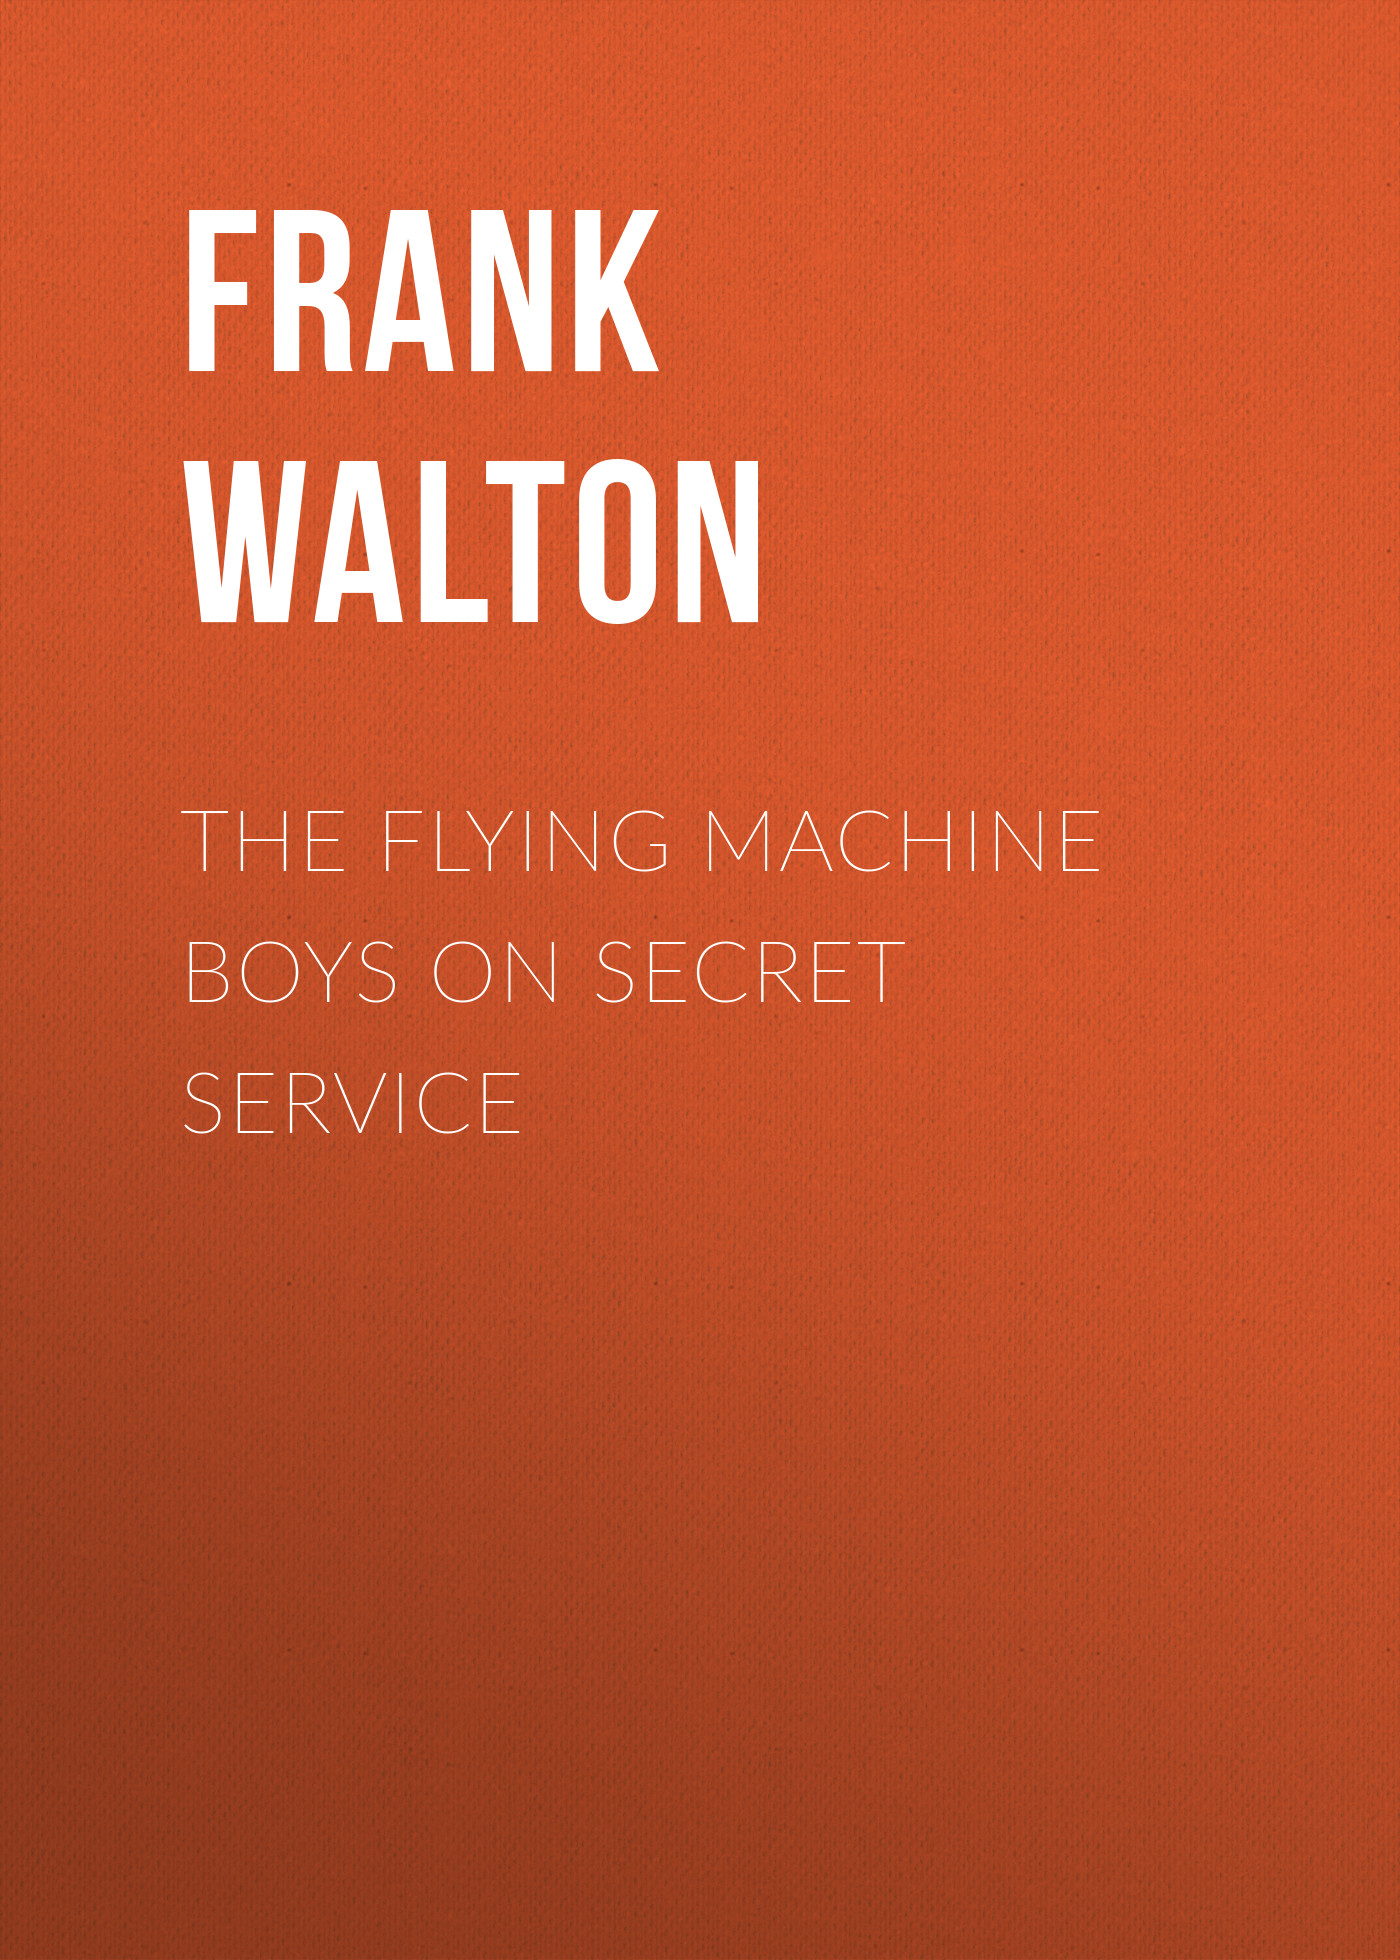 Frank Walton The Flying Machine Boys on Secret Service taft william nelson on secret service